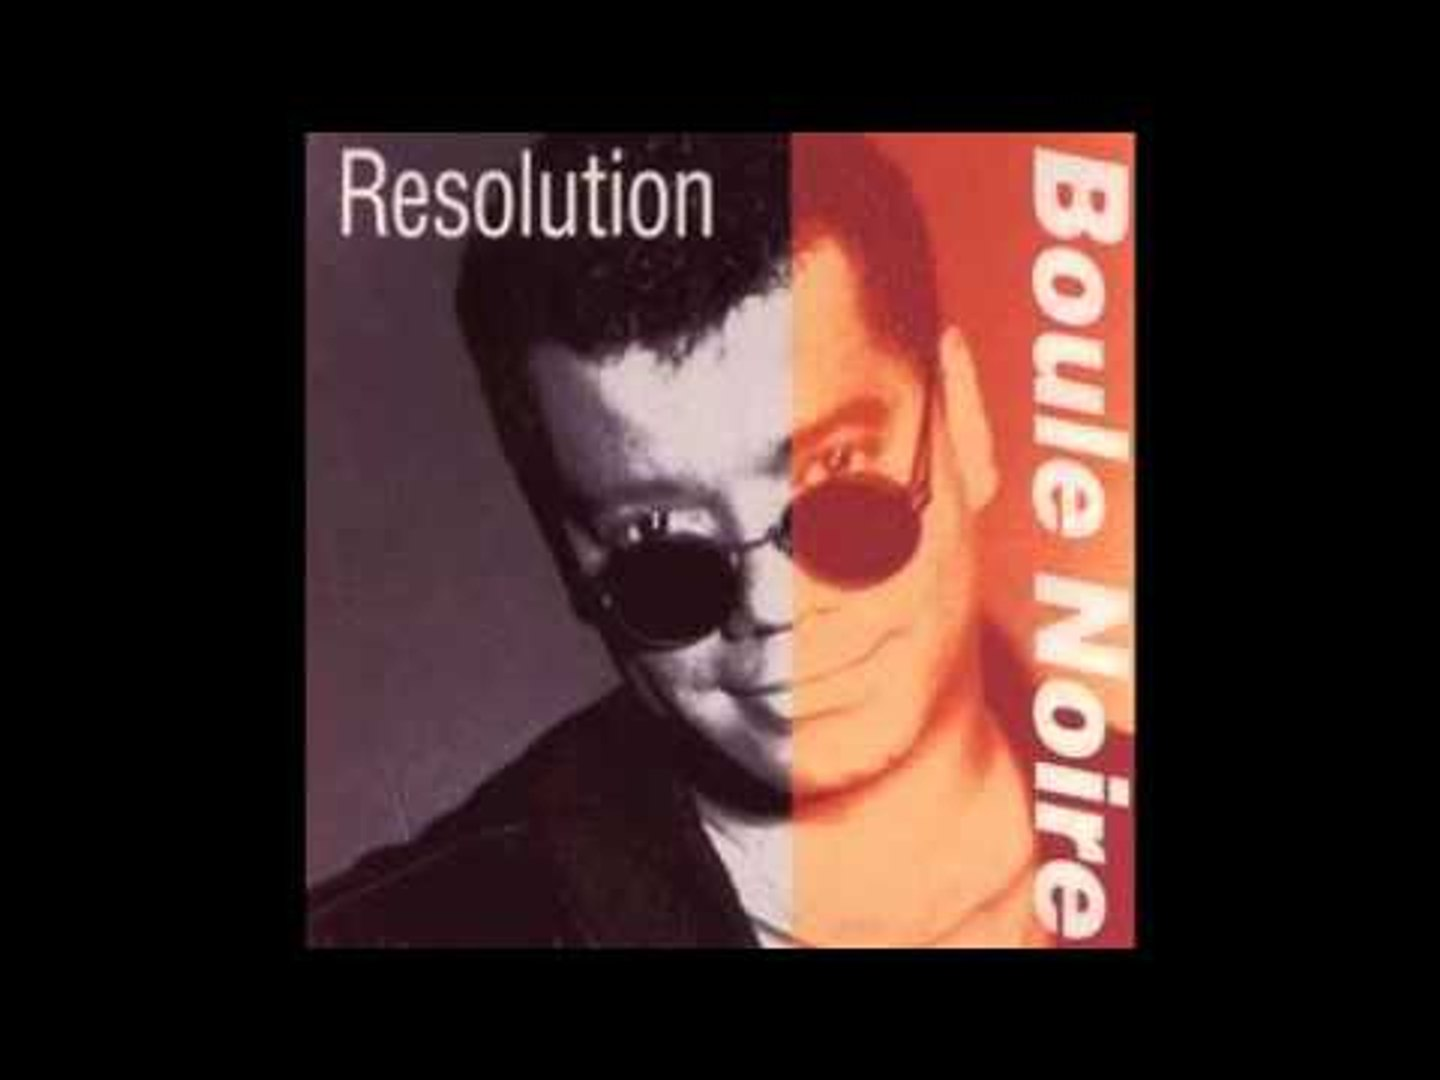 Boule Noire - I'd Like To Be Your Baby (En Amour)